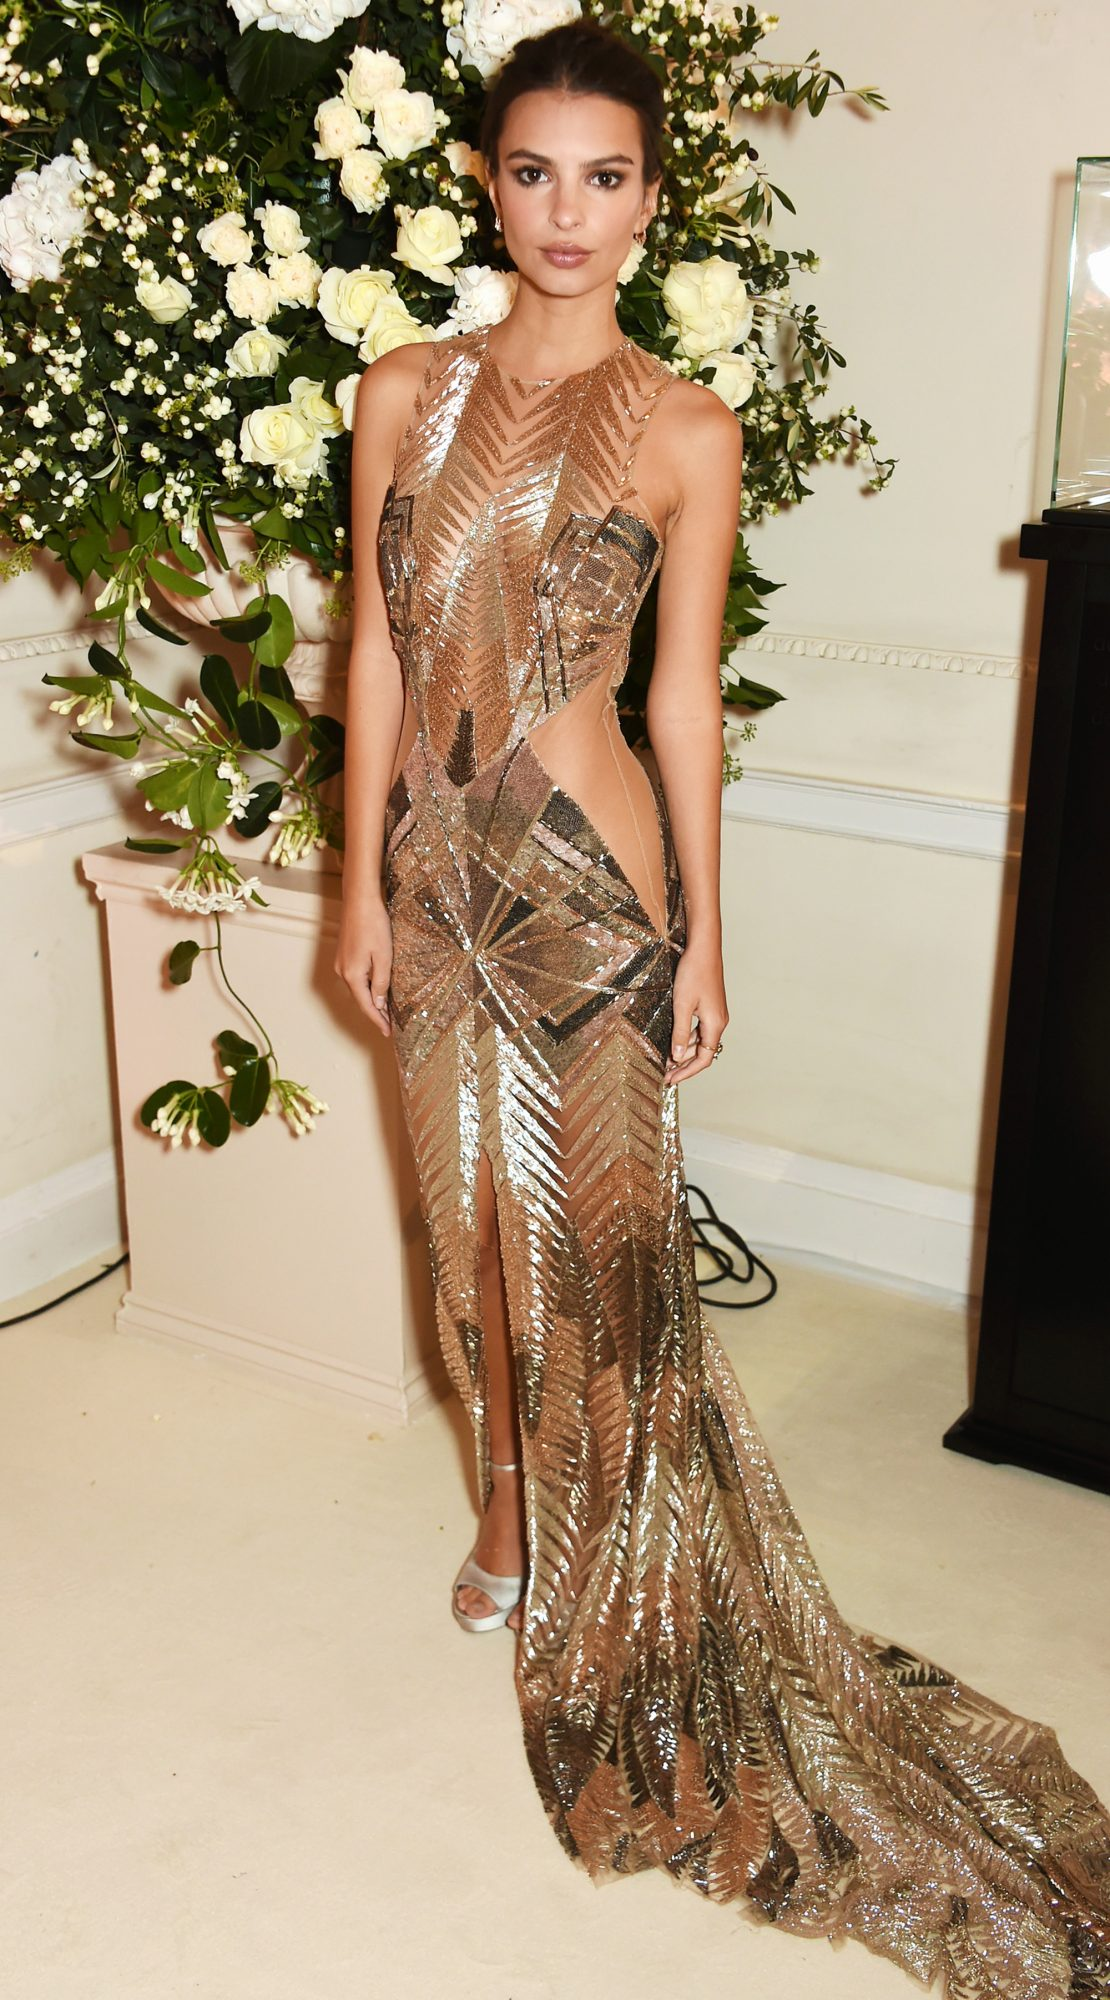 Emily Ratajkowski Marries Gold, Nude, and Sheer in One Incredible Dress